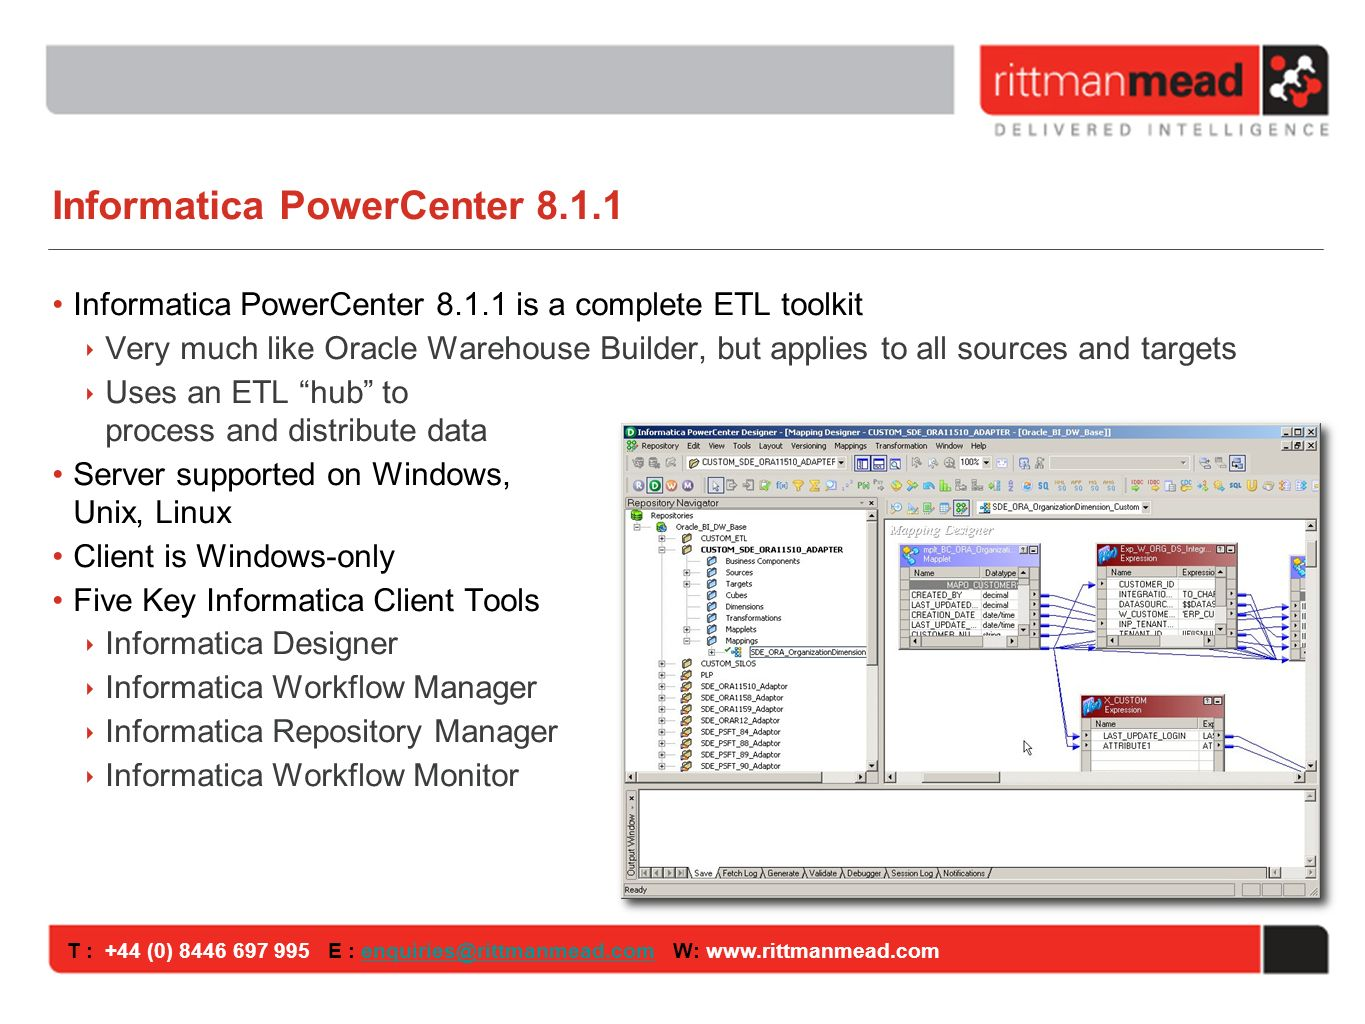 T : +44 (0) E : W: Informatica PowerCenter Informatica PowerCenter is a complete ETL toolkit Very much like Oracle Warehouse Builder, but applies to all sources and targets Uses an ETL hub to process and distribute data Server supported on Windows, Unix, Linux Client is Windows-only Five Key Informatica Client Tools Informatica Designer Informatica Workflow Manager Informatica Repository Manager Informatica Workflow Monitor